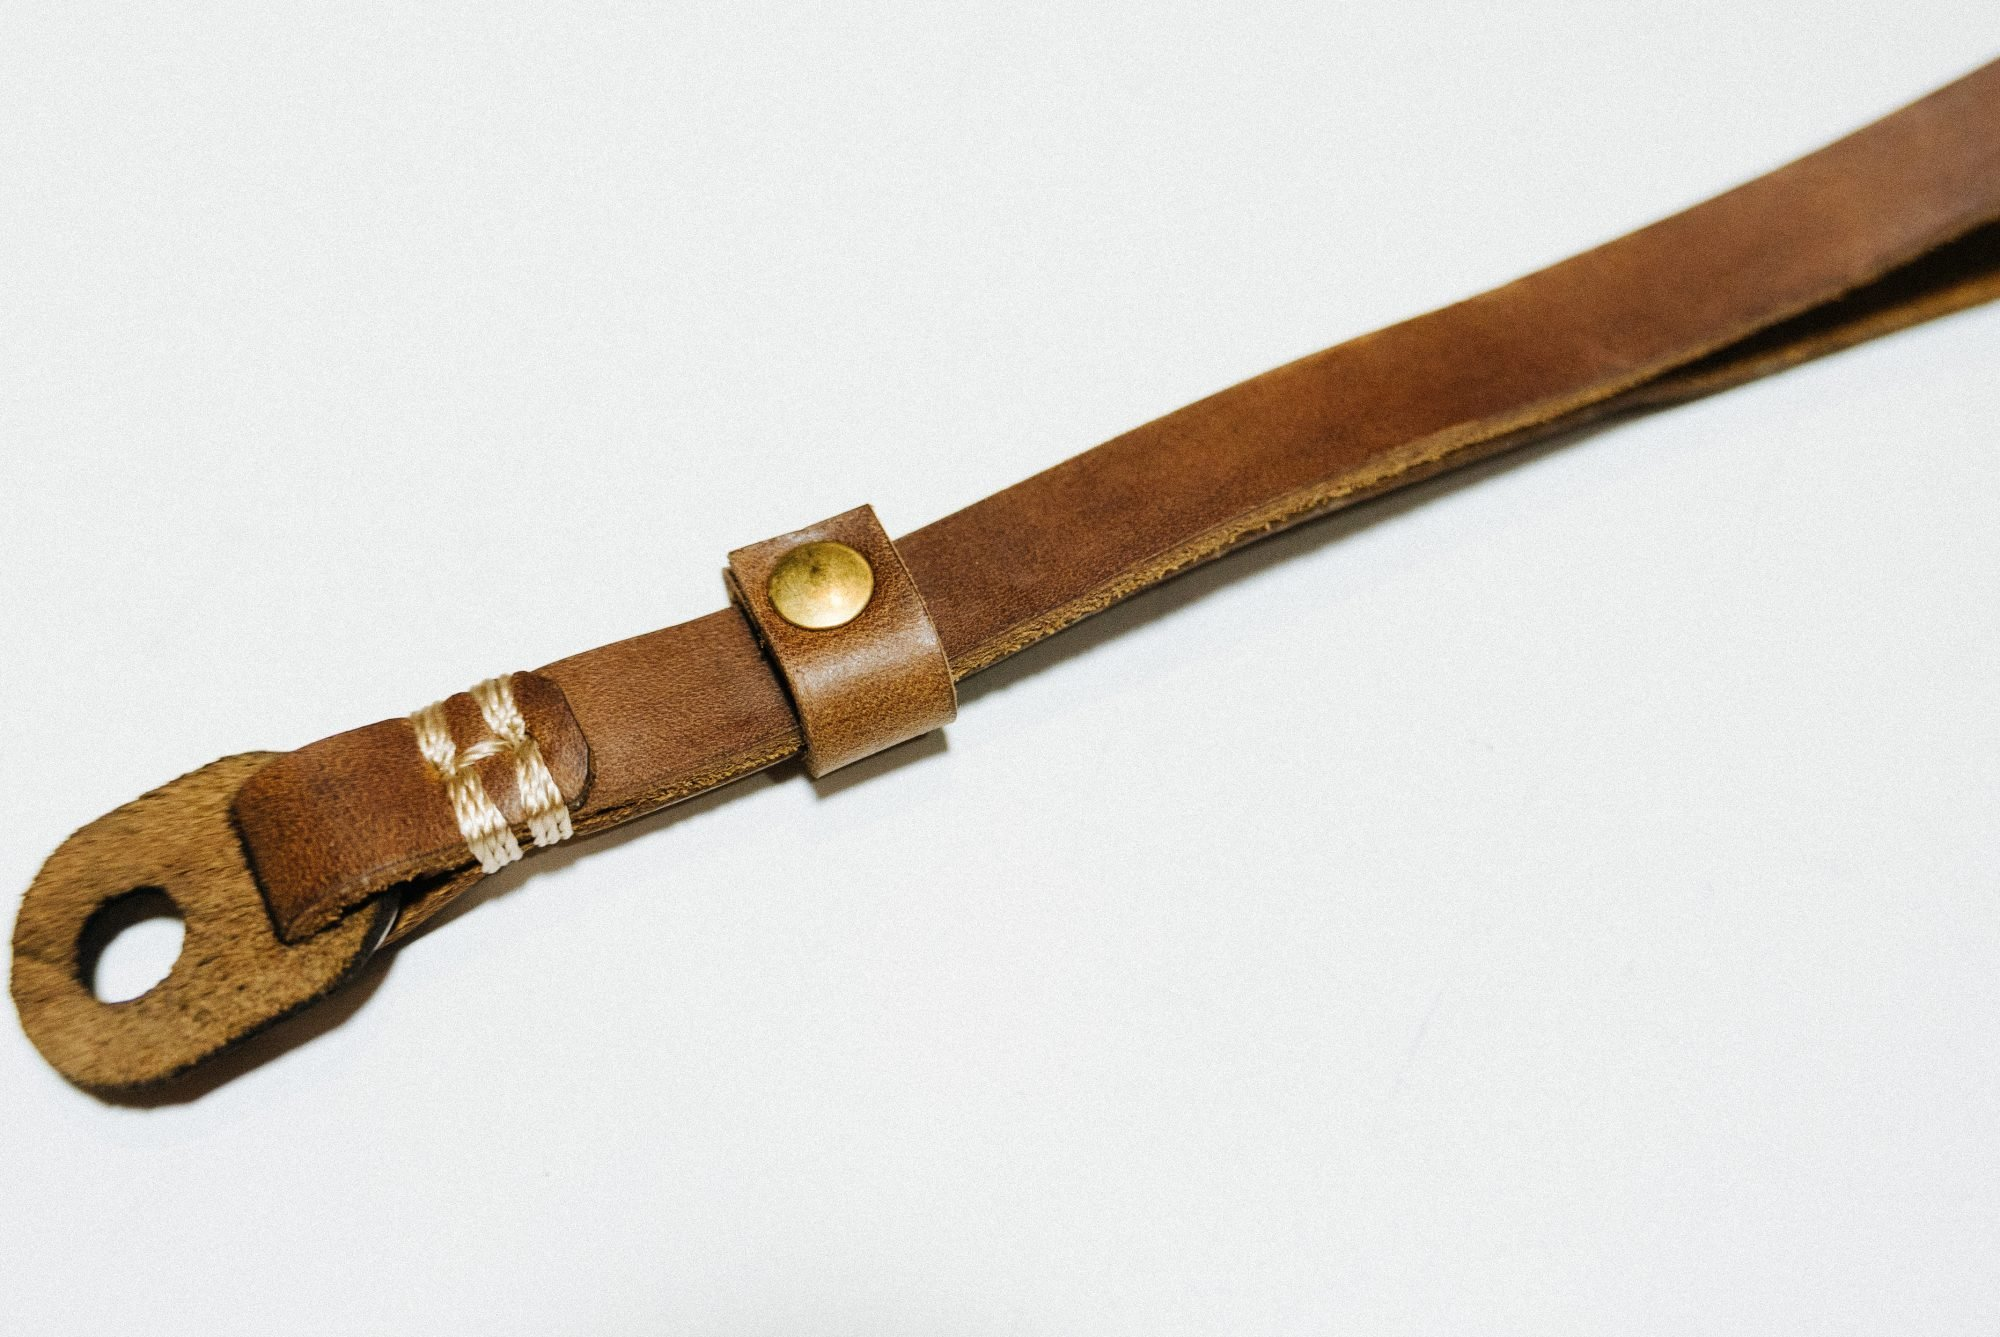 Henri by Eric Kim Handmade Premium Leather Camera Wrist Strap by Eric Kim Photography (Image #2)